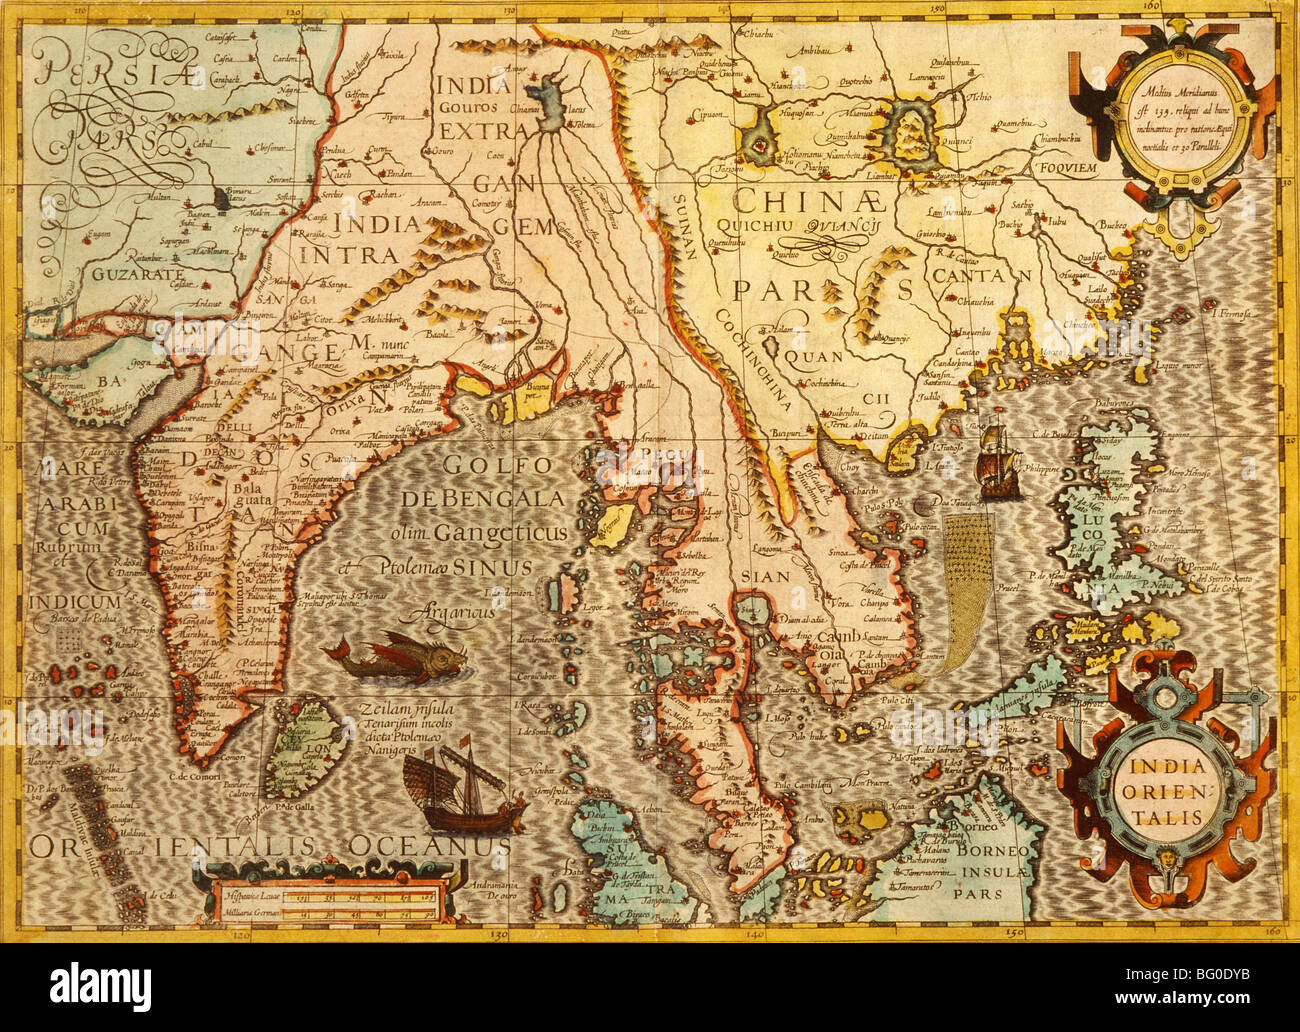 Old Map of Asia - Stock Image